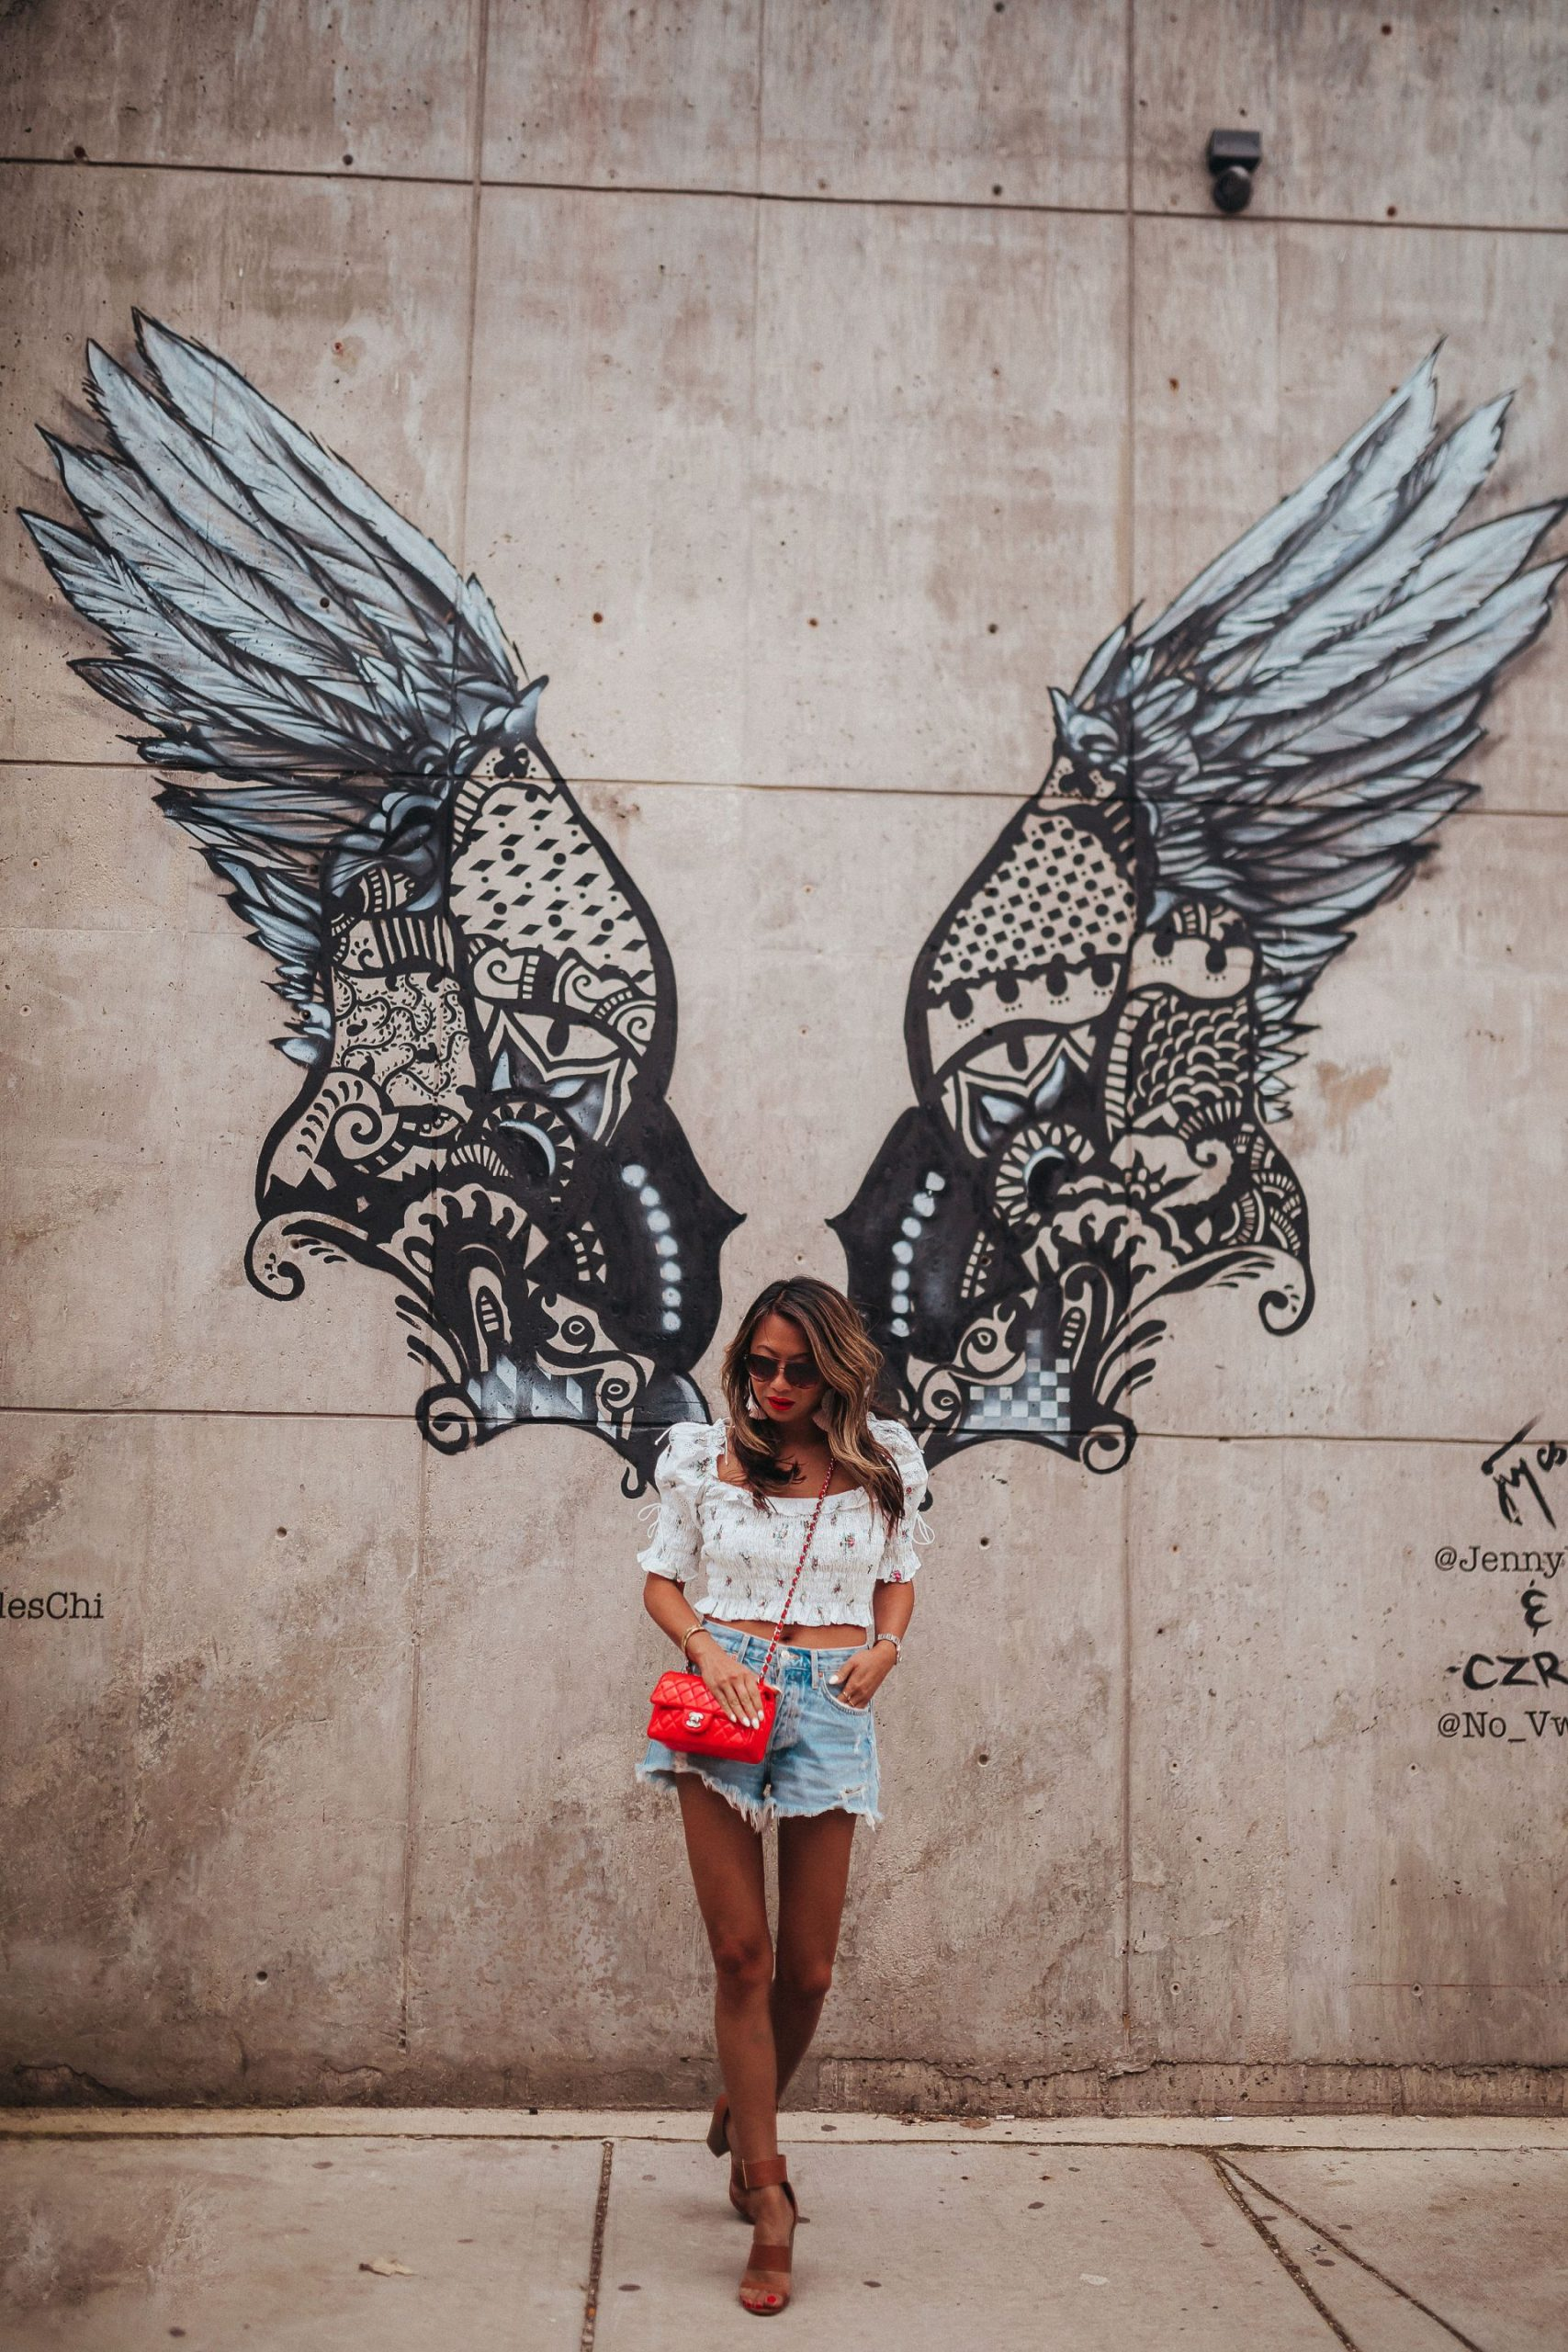 Top 10 Best Instagrammable Walls in Chicago, wall art in chicago, street art in chicago, best wall murals in chicago, photography in chicago, instagram chicago, best places to take photos in chicago, photoshoots in chicago, wall murals in chicago, wall guide, best wall art in chicago, 2020 murals in chicago, chicago guide, chicago blogger, chicago travel, chicago photography, chicago wall art, chicago murals, chicago art, Federales Wings chicago mural, wings street art, chicago wings mural